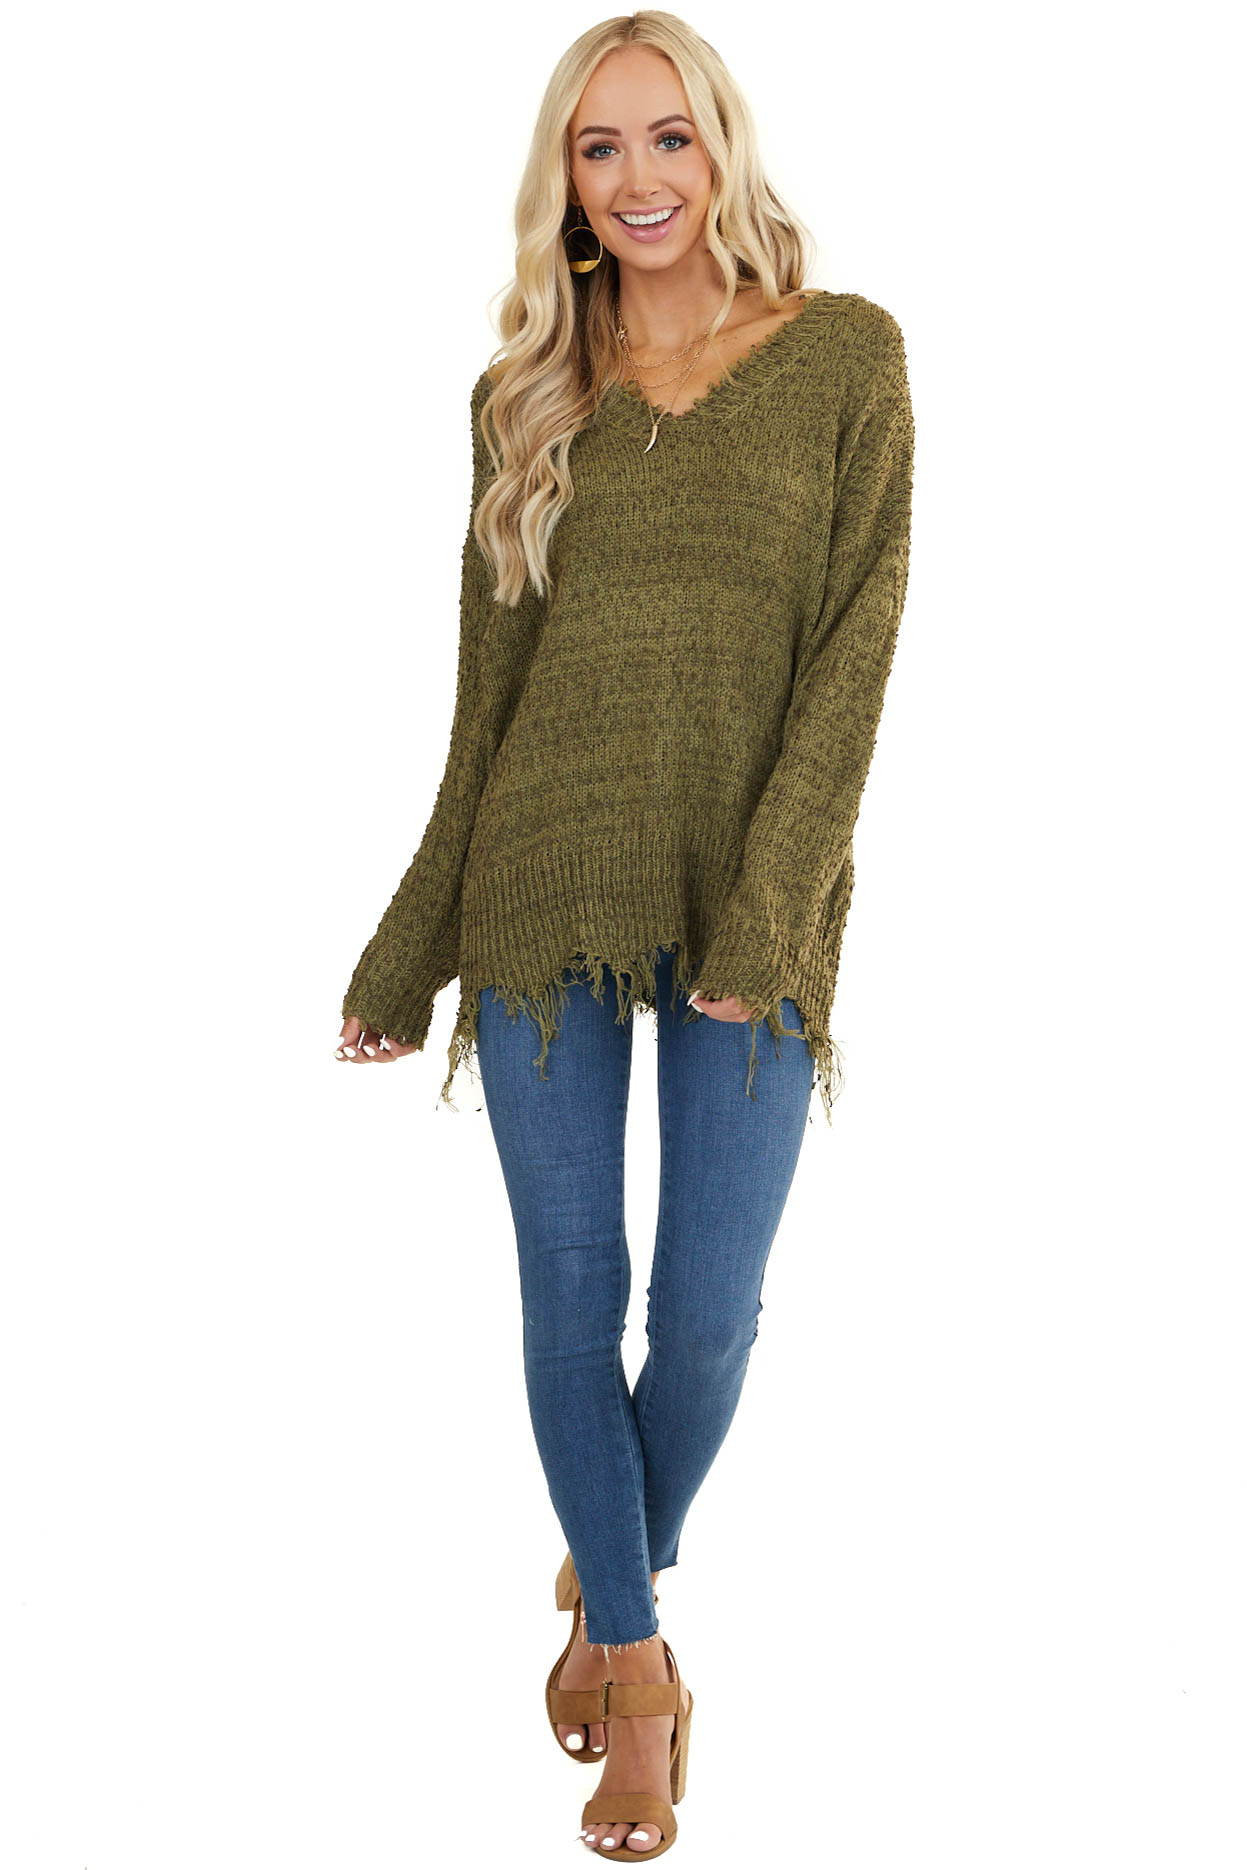 Hunter Green and Olive V Neck Sweater with Frayed Hems